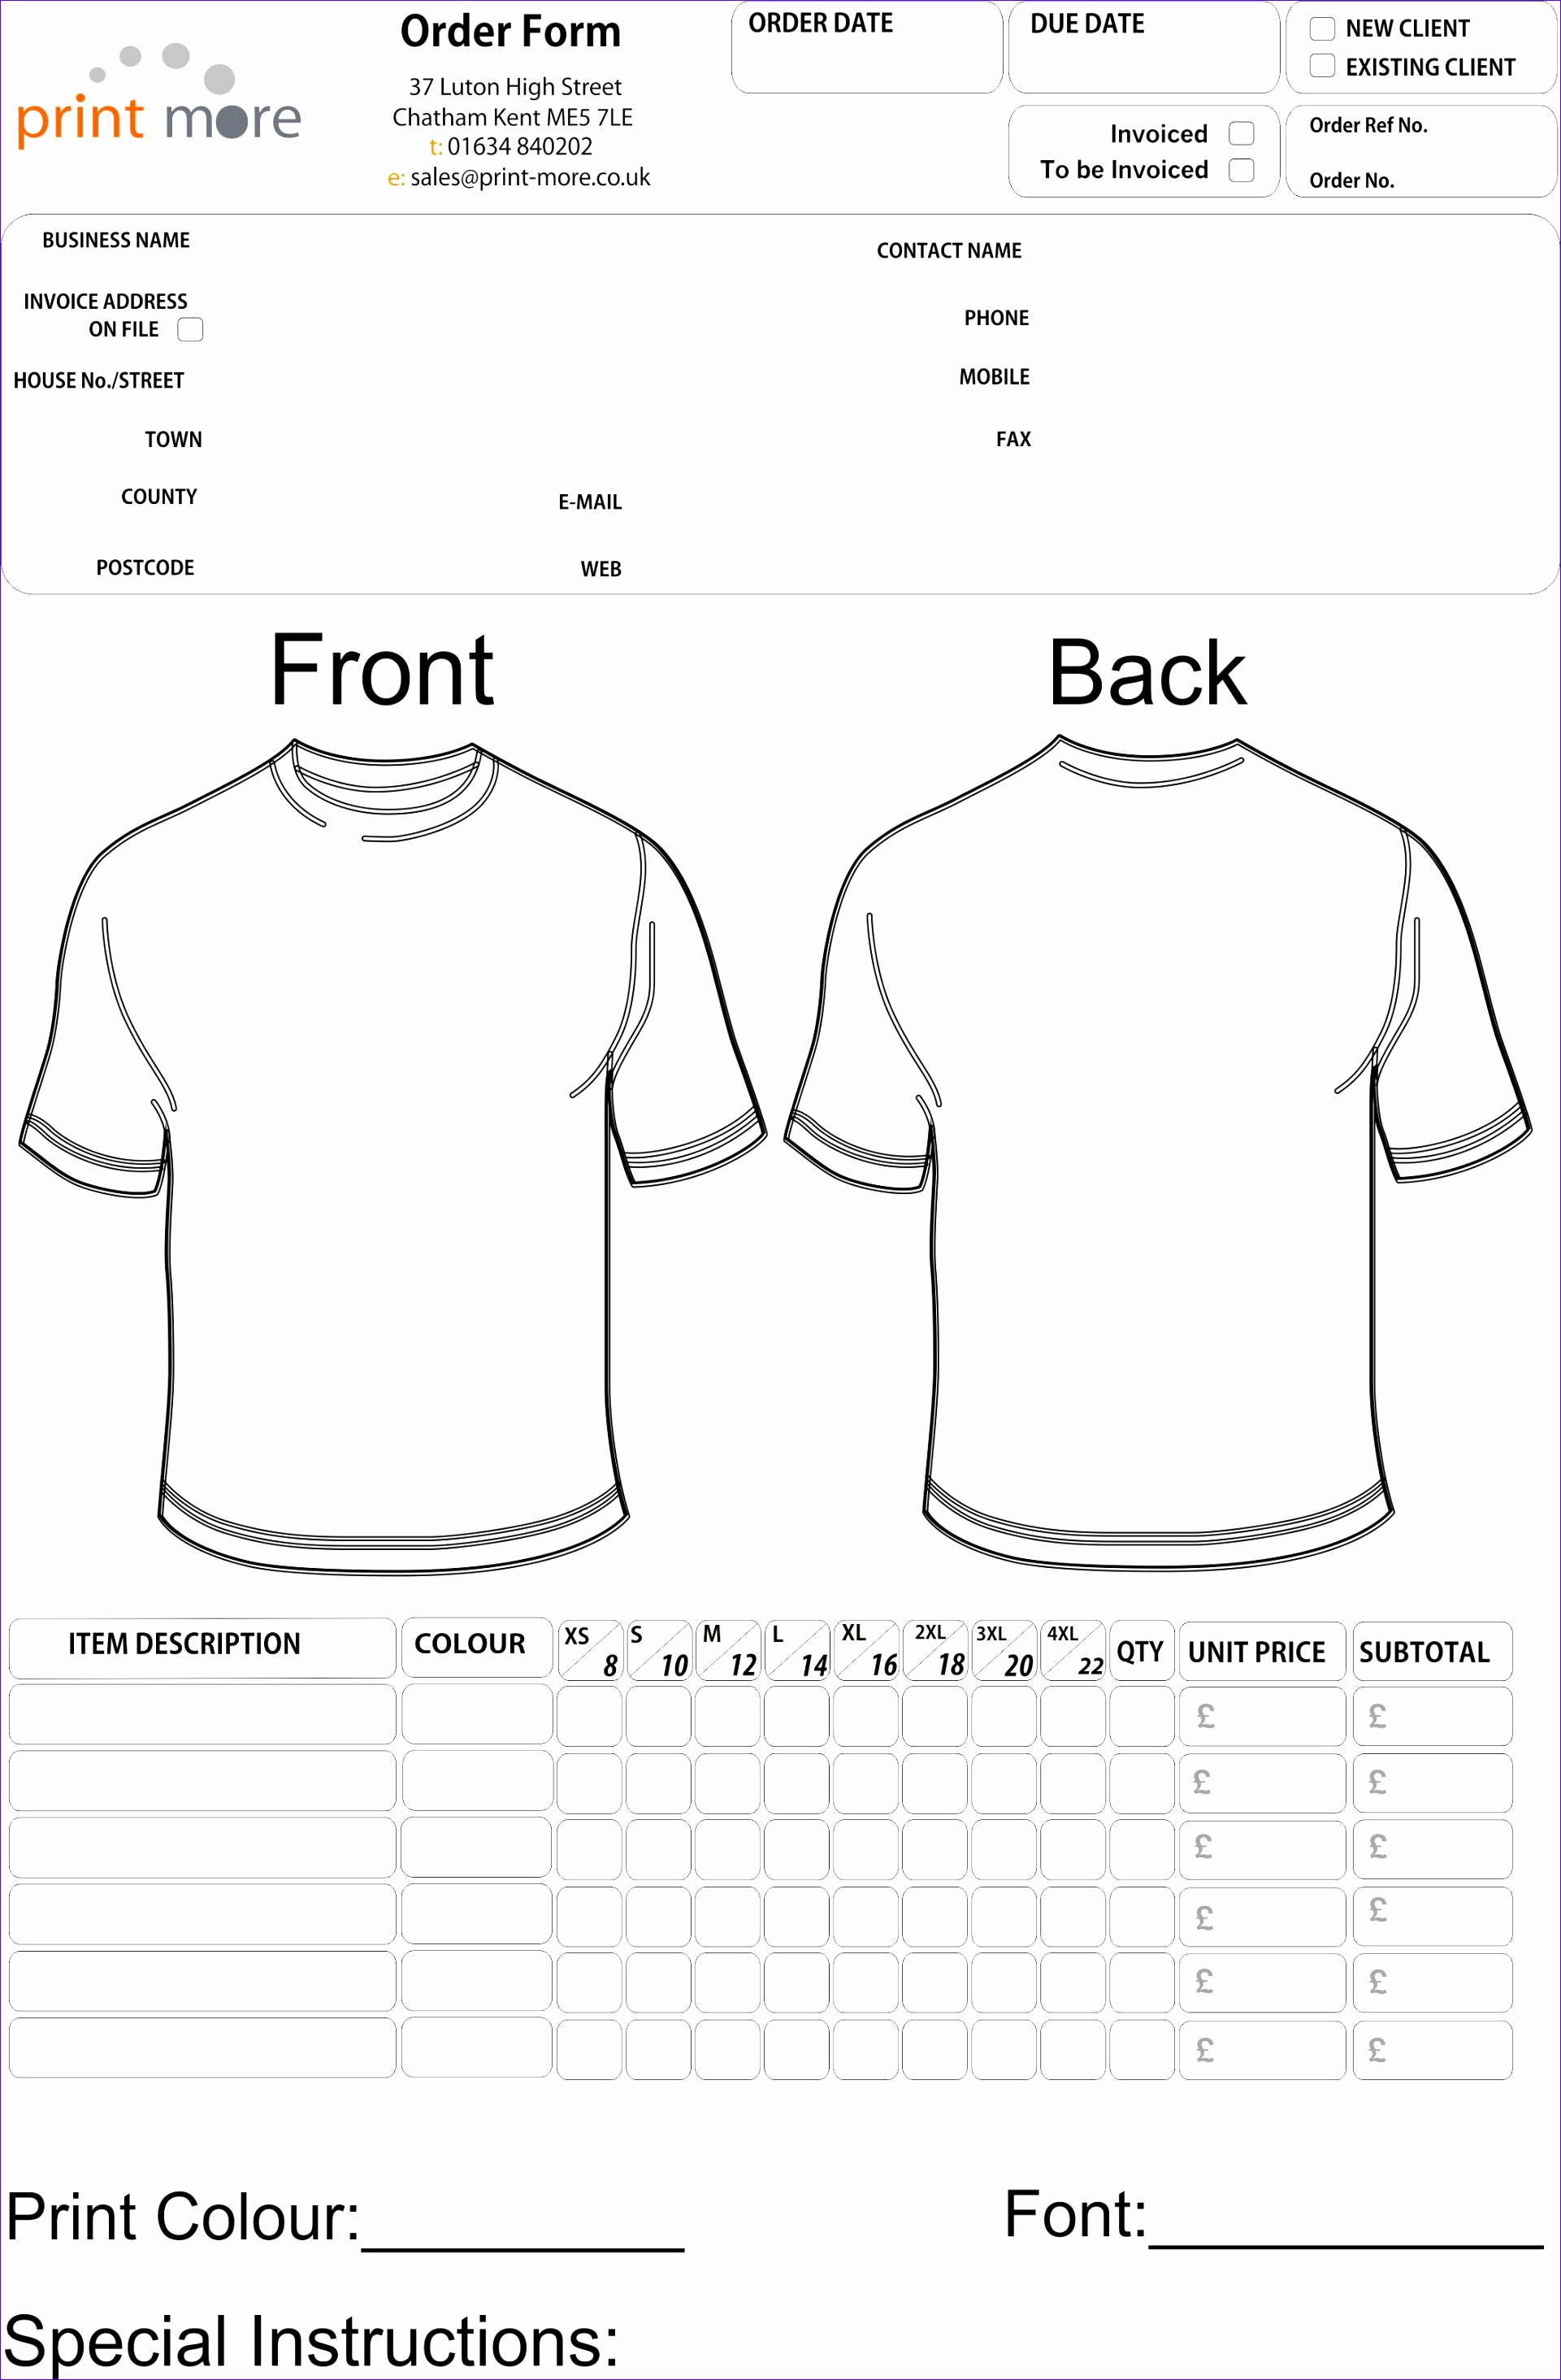 Microsoft Excel order form Template Zctfm Fresh T Shirt order Lareal